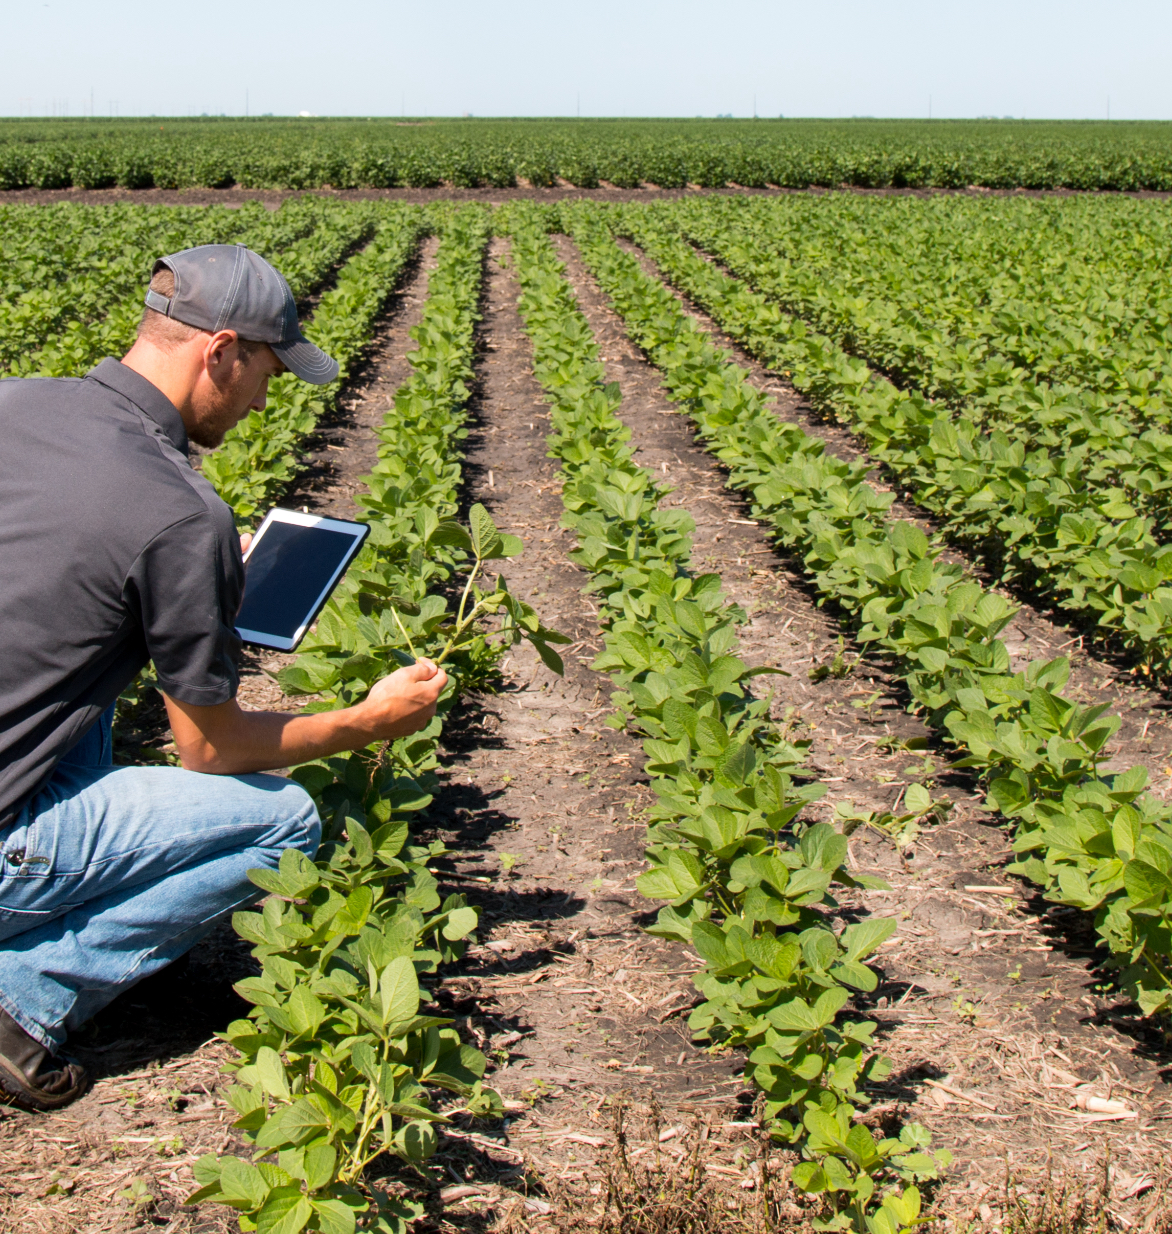 Man in row crops with technology device